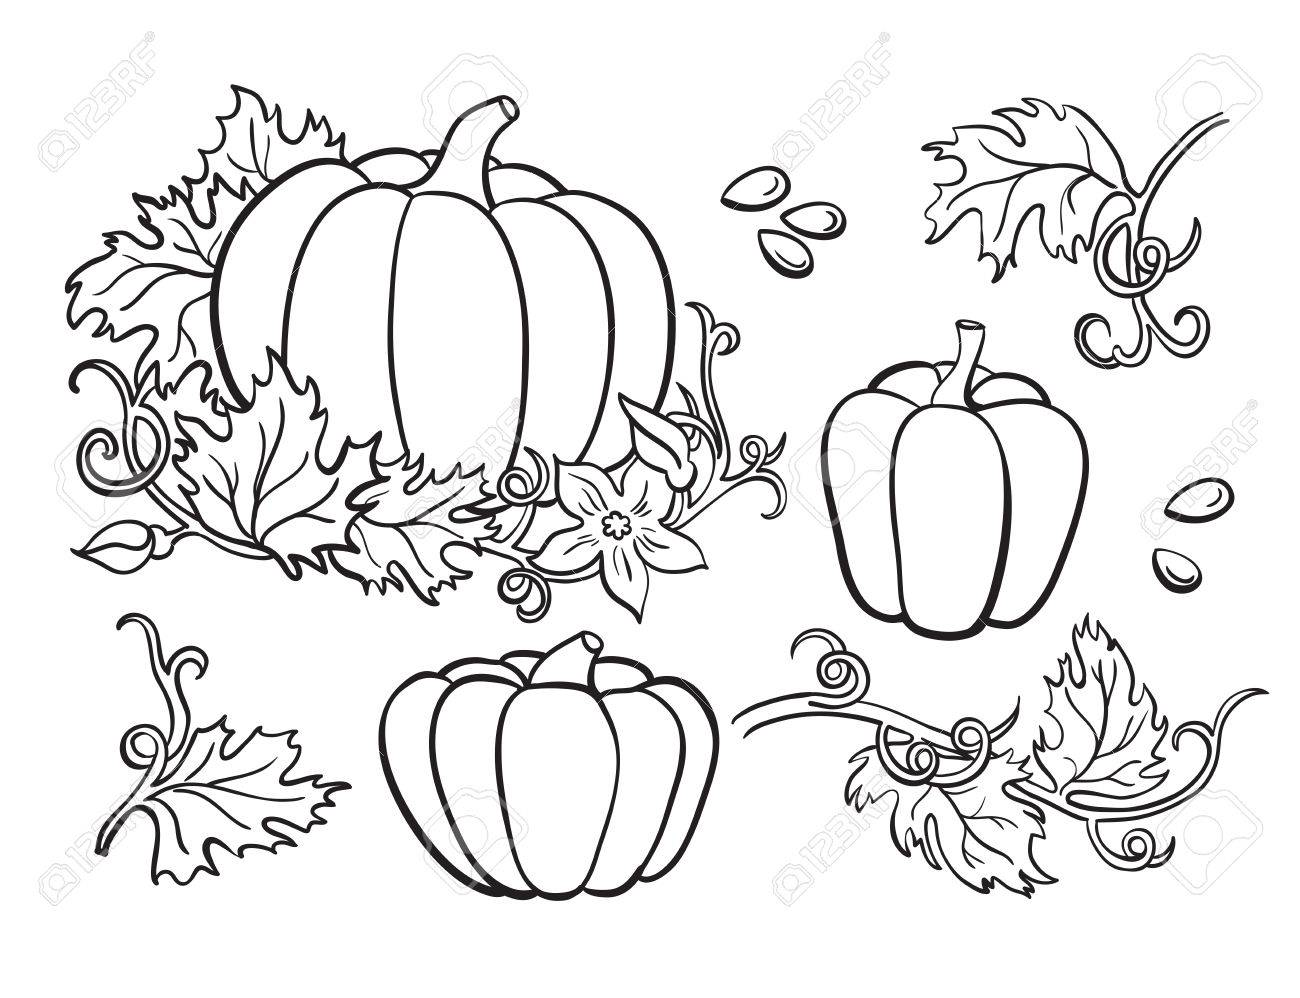 1300x998 Pumpkin Vector Drawing Set. Isolated Outline Vegetable, Plant